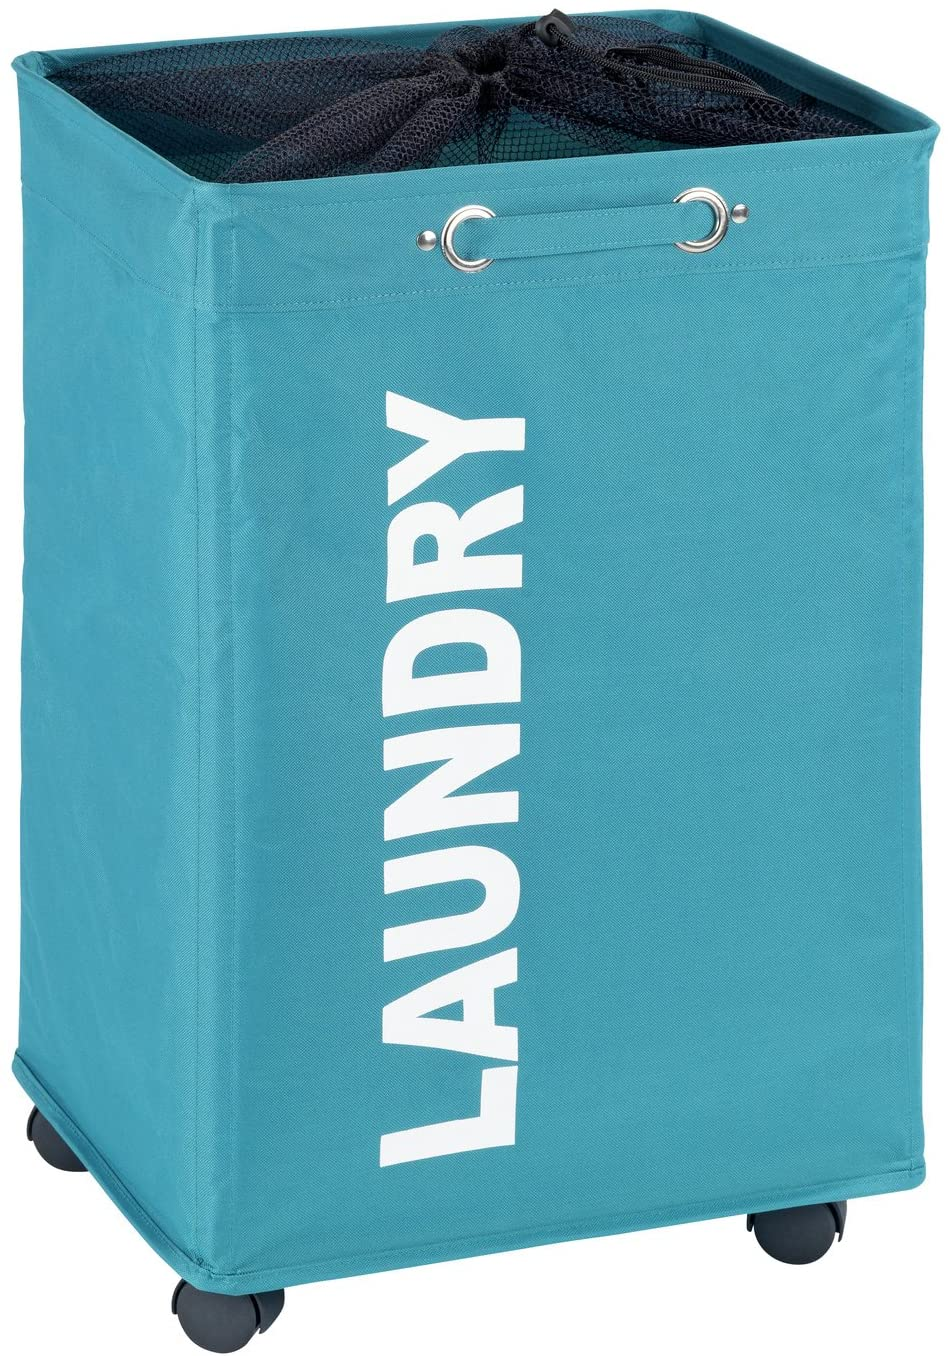 WENKO Quadro Basket with Wheels, Sorter, with Lid, Storage, Hamper, Laundry Bin, Slim, Petrol, 15.7 x 23.6 x 13.0 inch, Blue